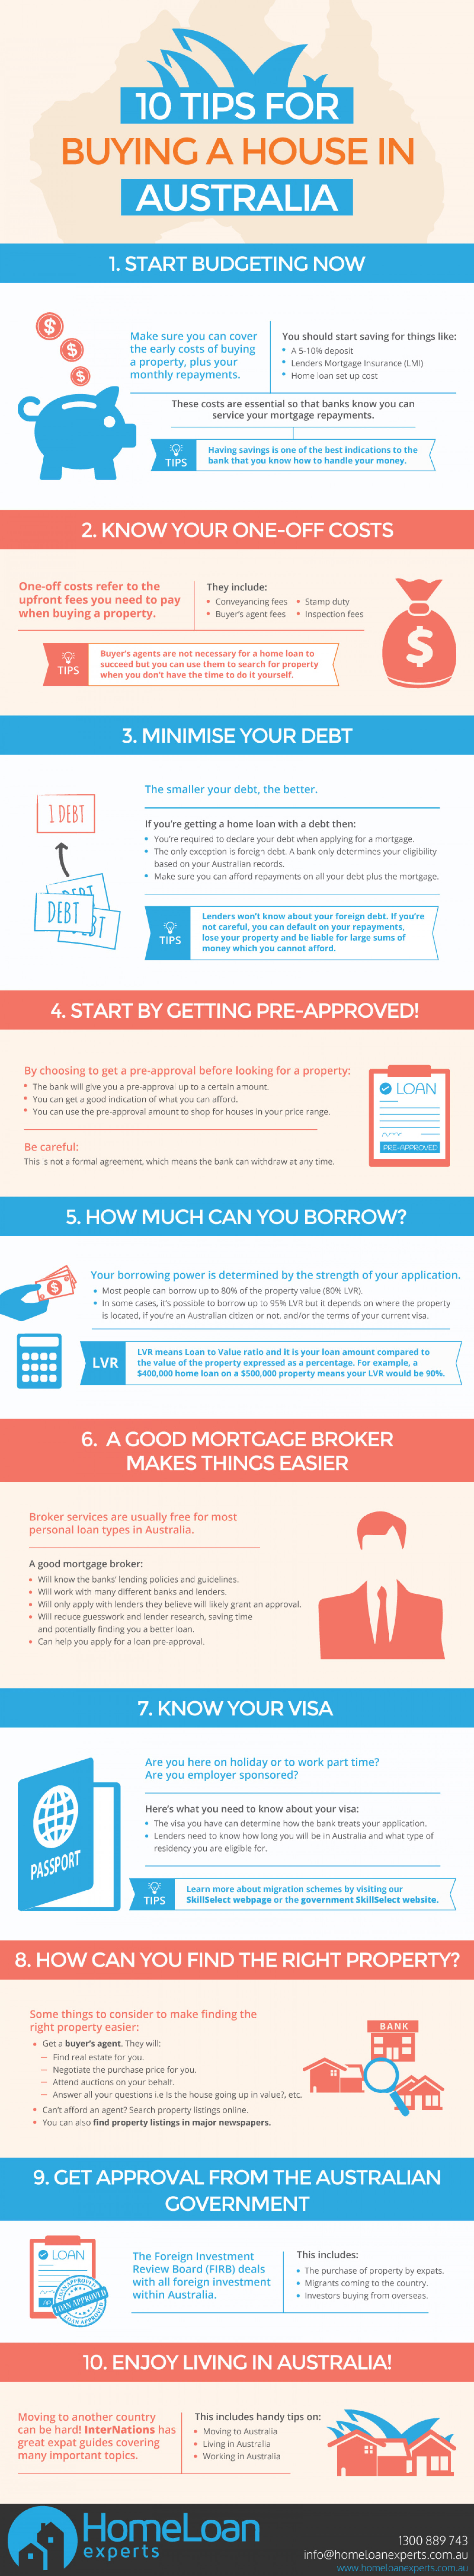 10 Tips For Buying A House In Australia Infographic